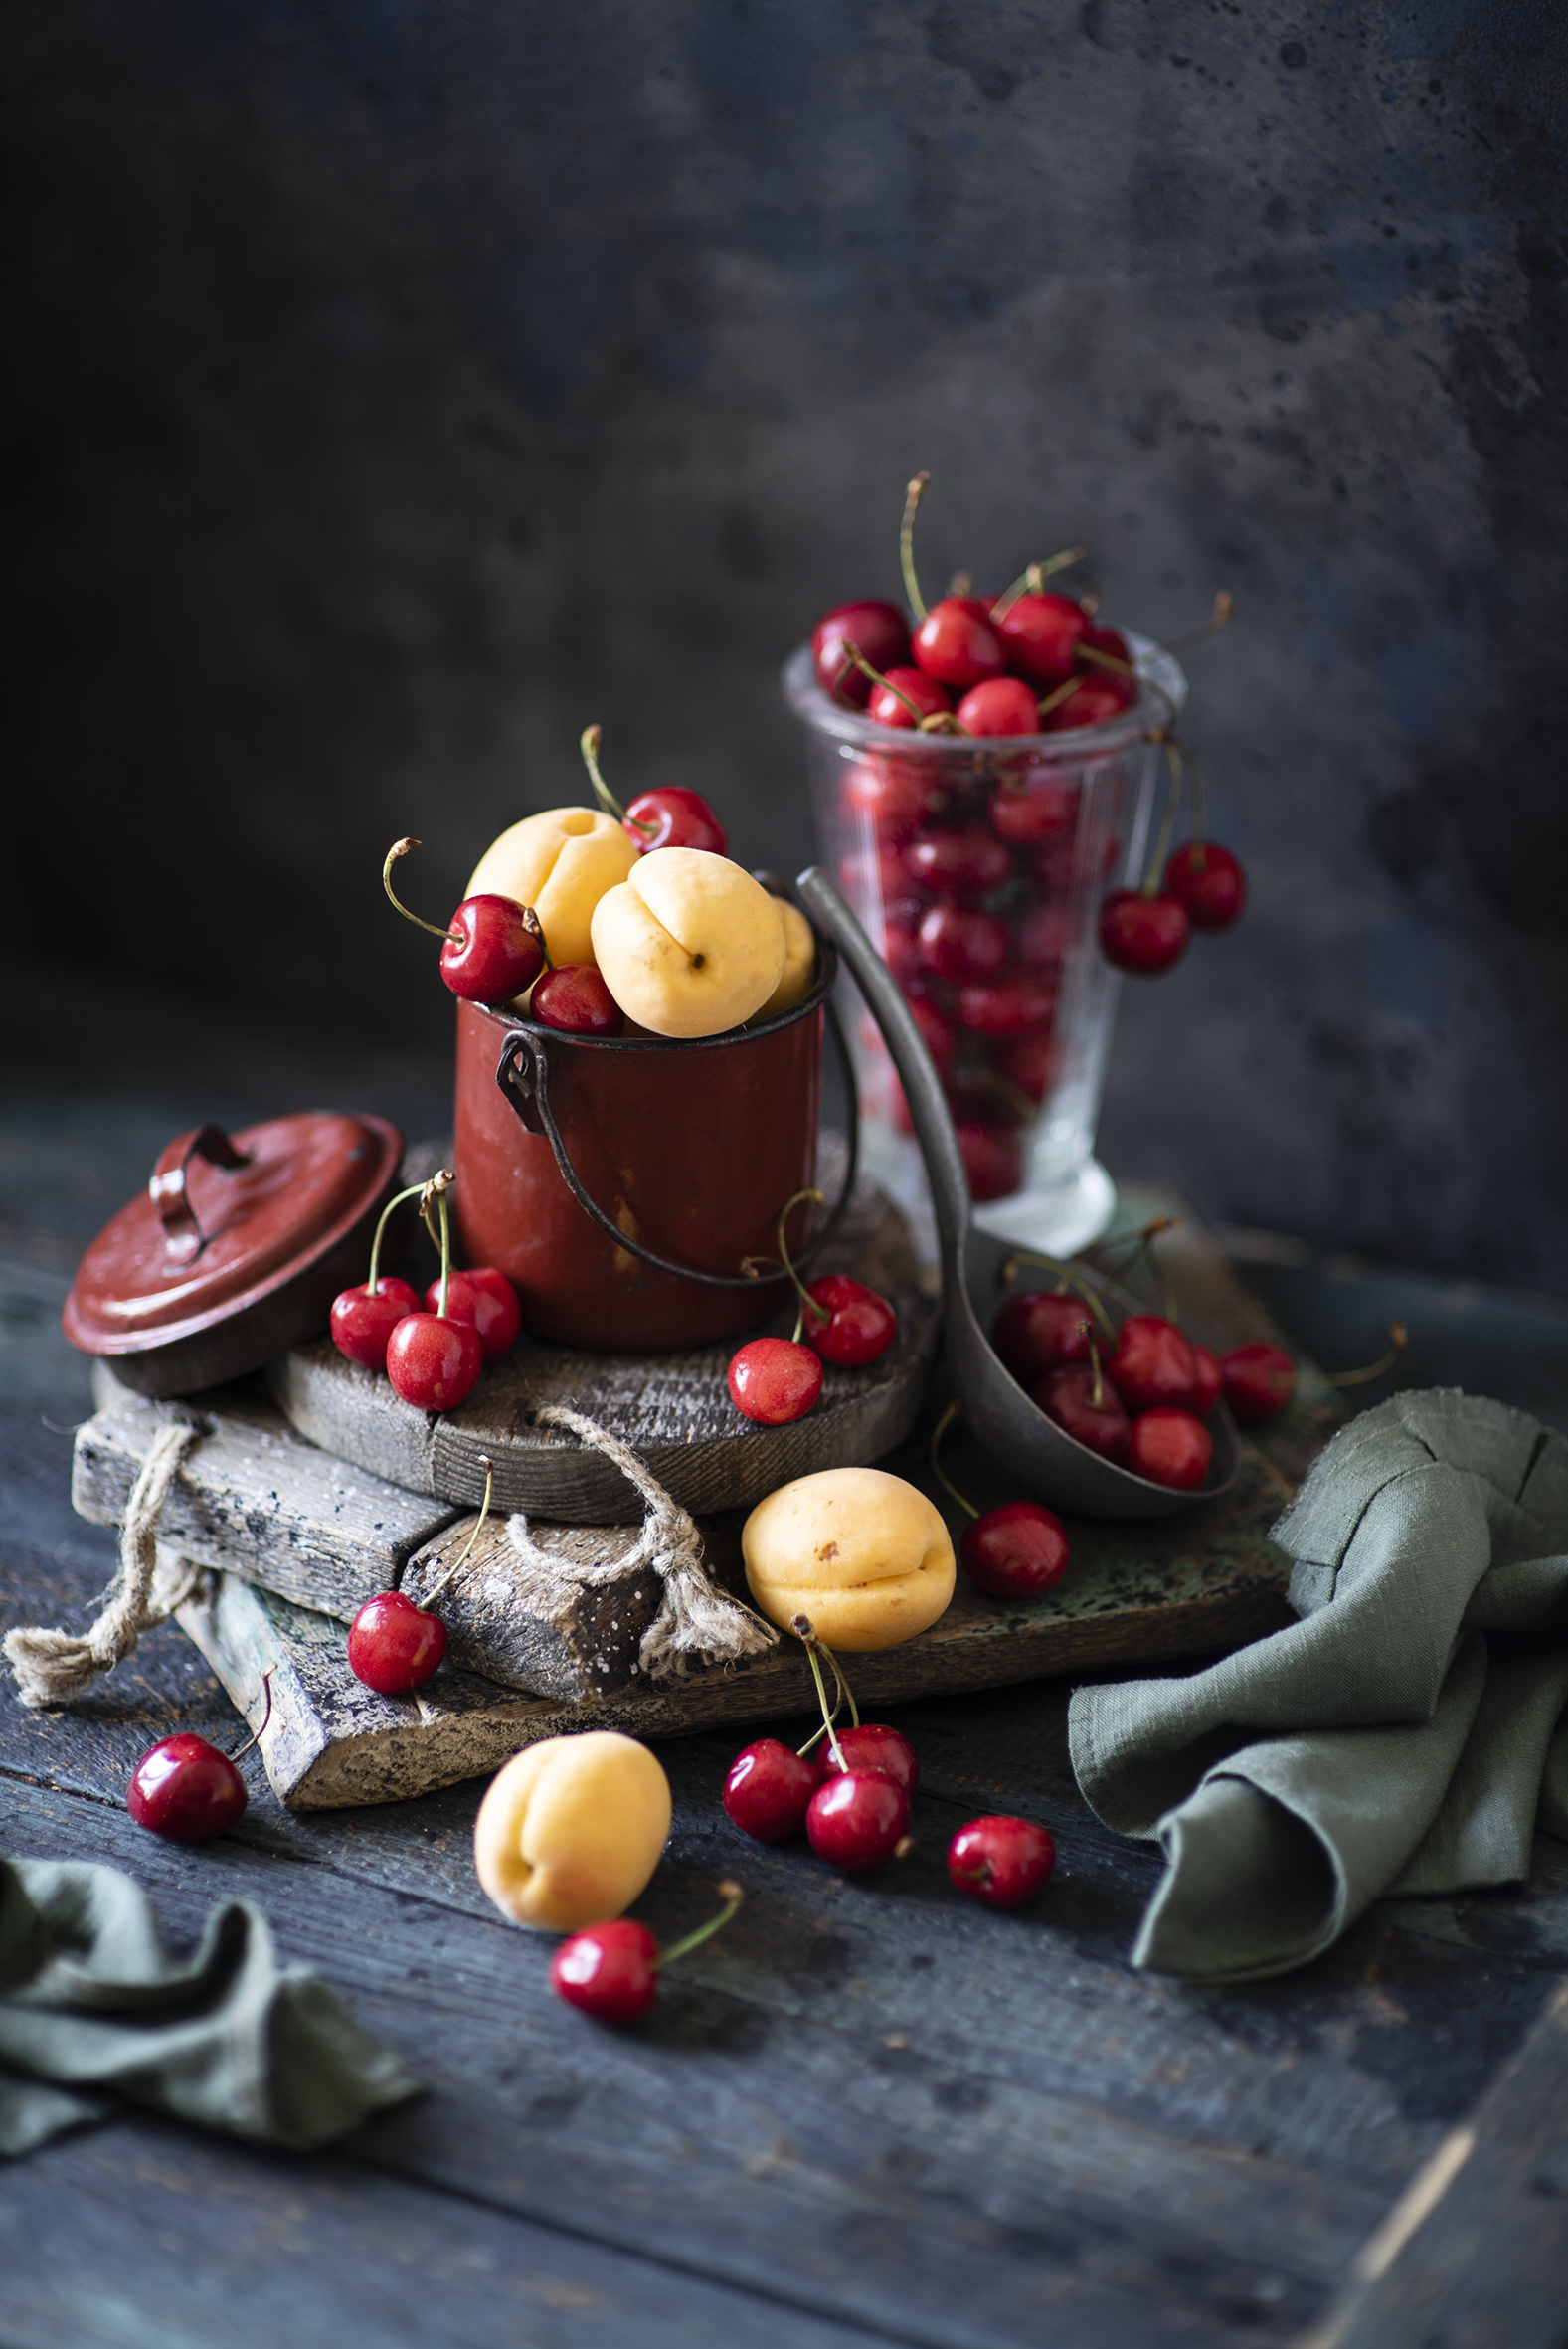 Photos Bucket Apricot Cherry Food Still-life Wood planks  for Mobile phone boards